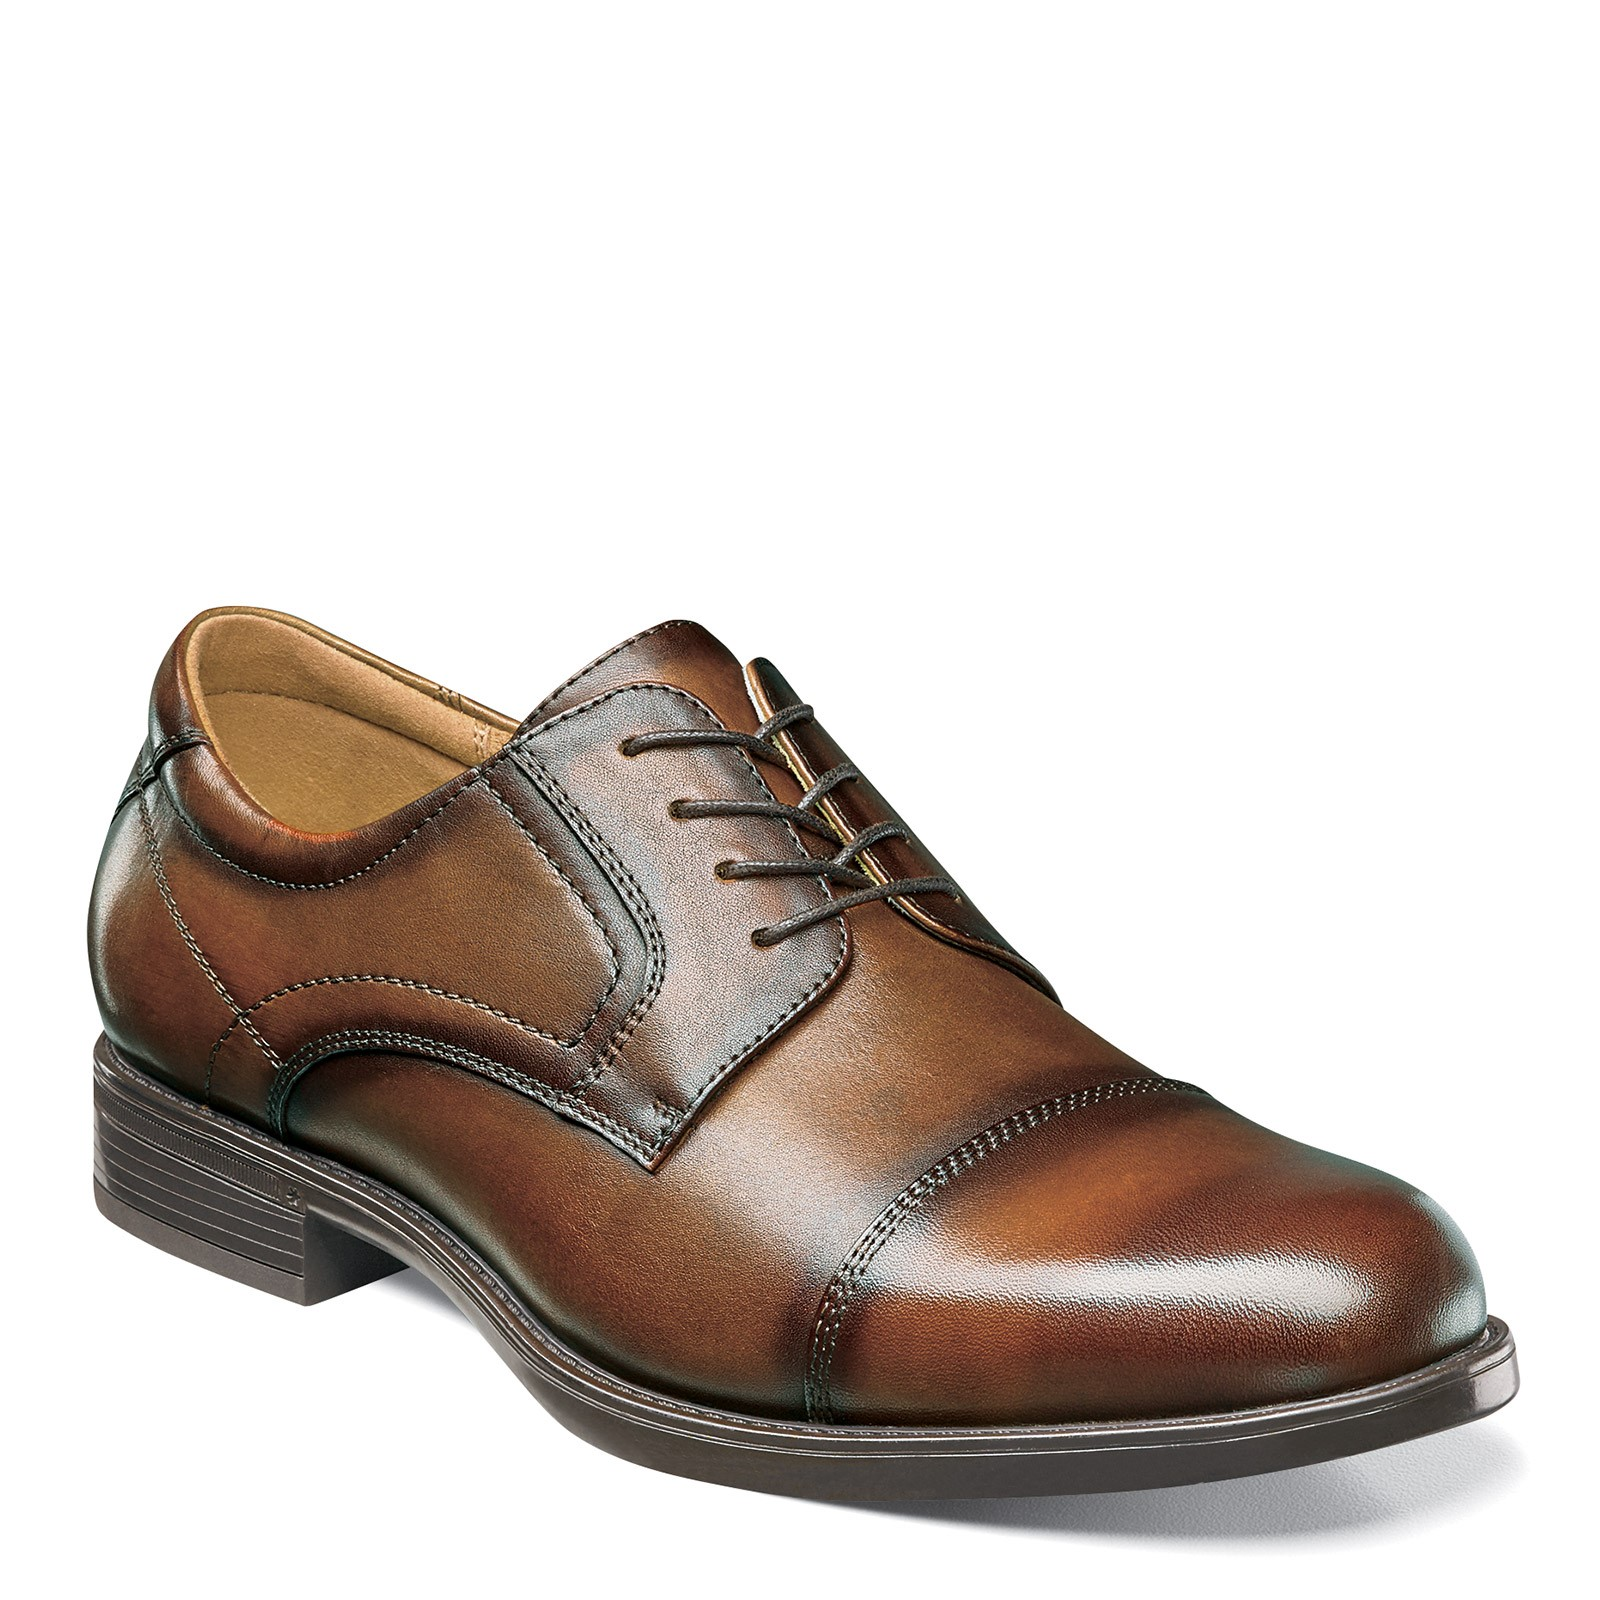 Men's Florsheim, Midtown Cap Toe Lace up Oxfords